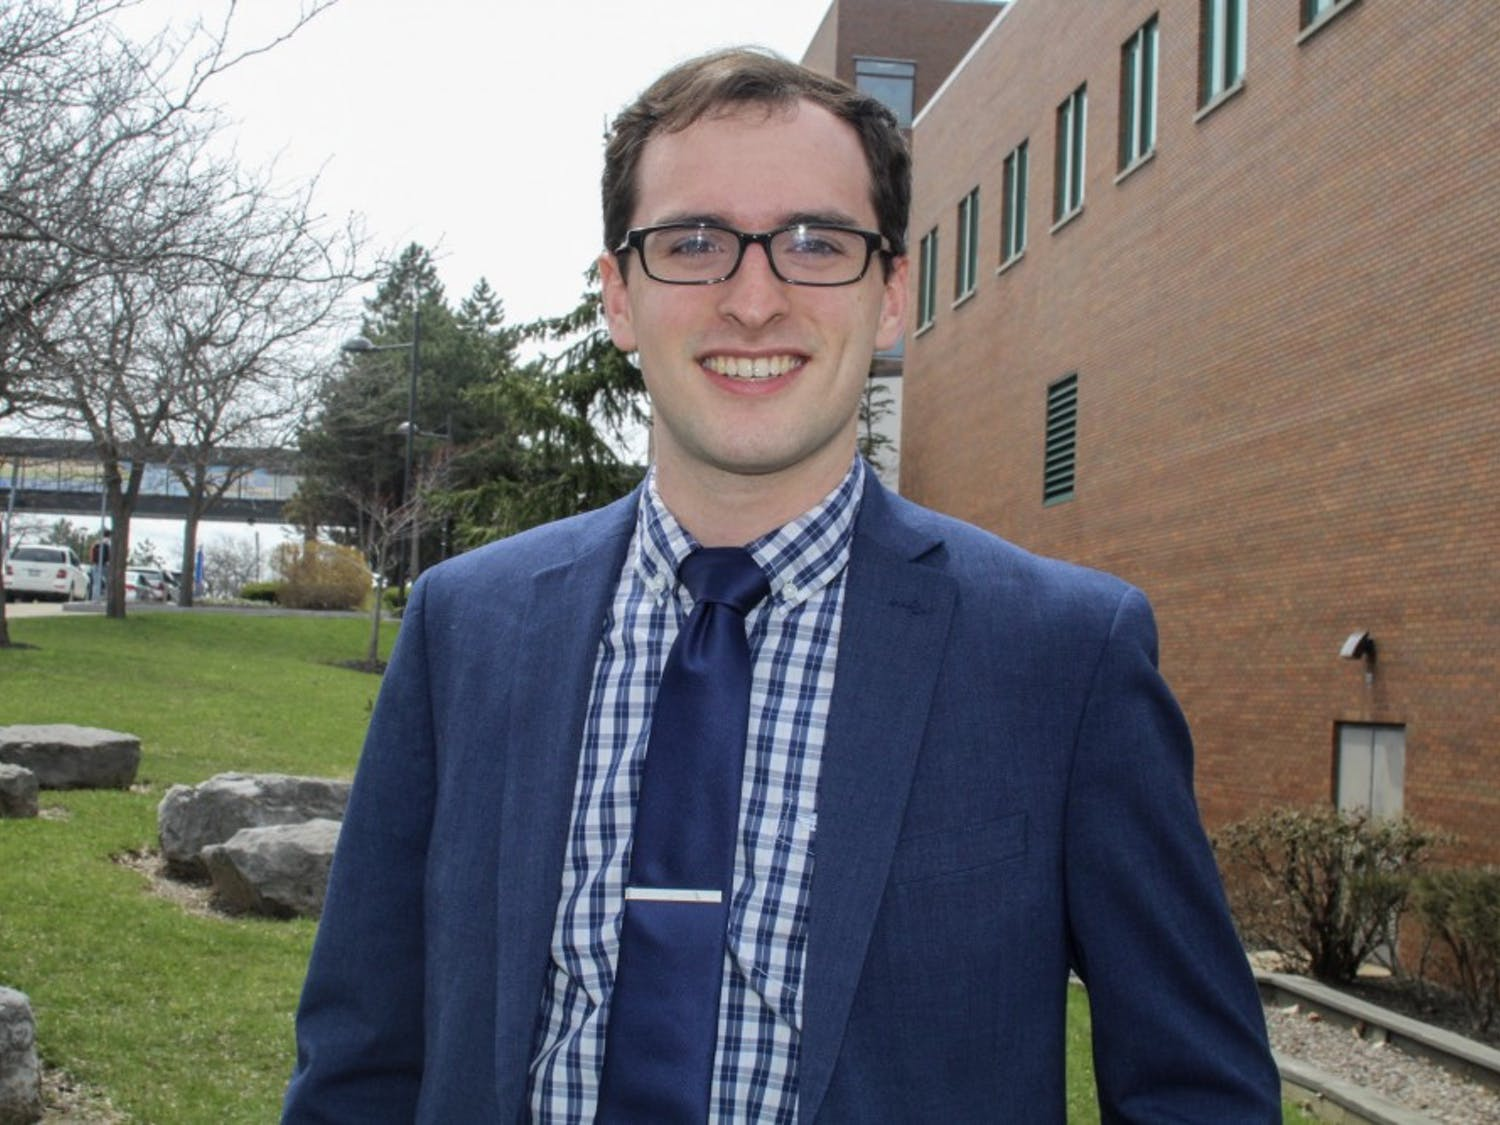 Junior political science and computer science major Mike Brown has been elected for a second term as UB Council student representative. Brown's plans for his second term include improved parking and a implementing a student-centric budgeting system.